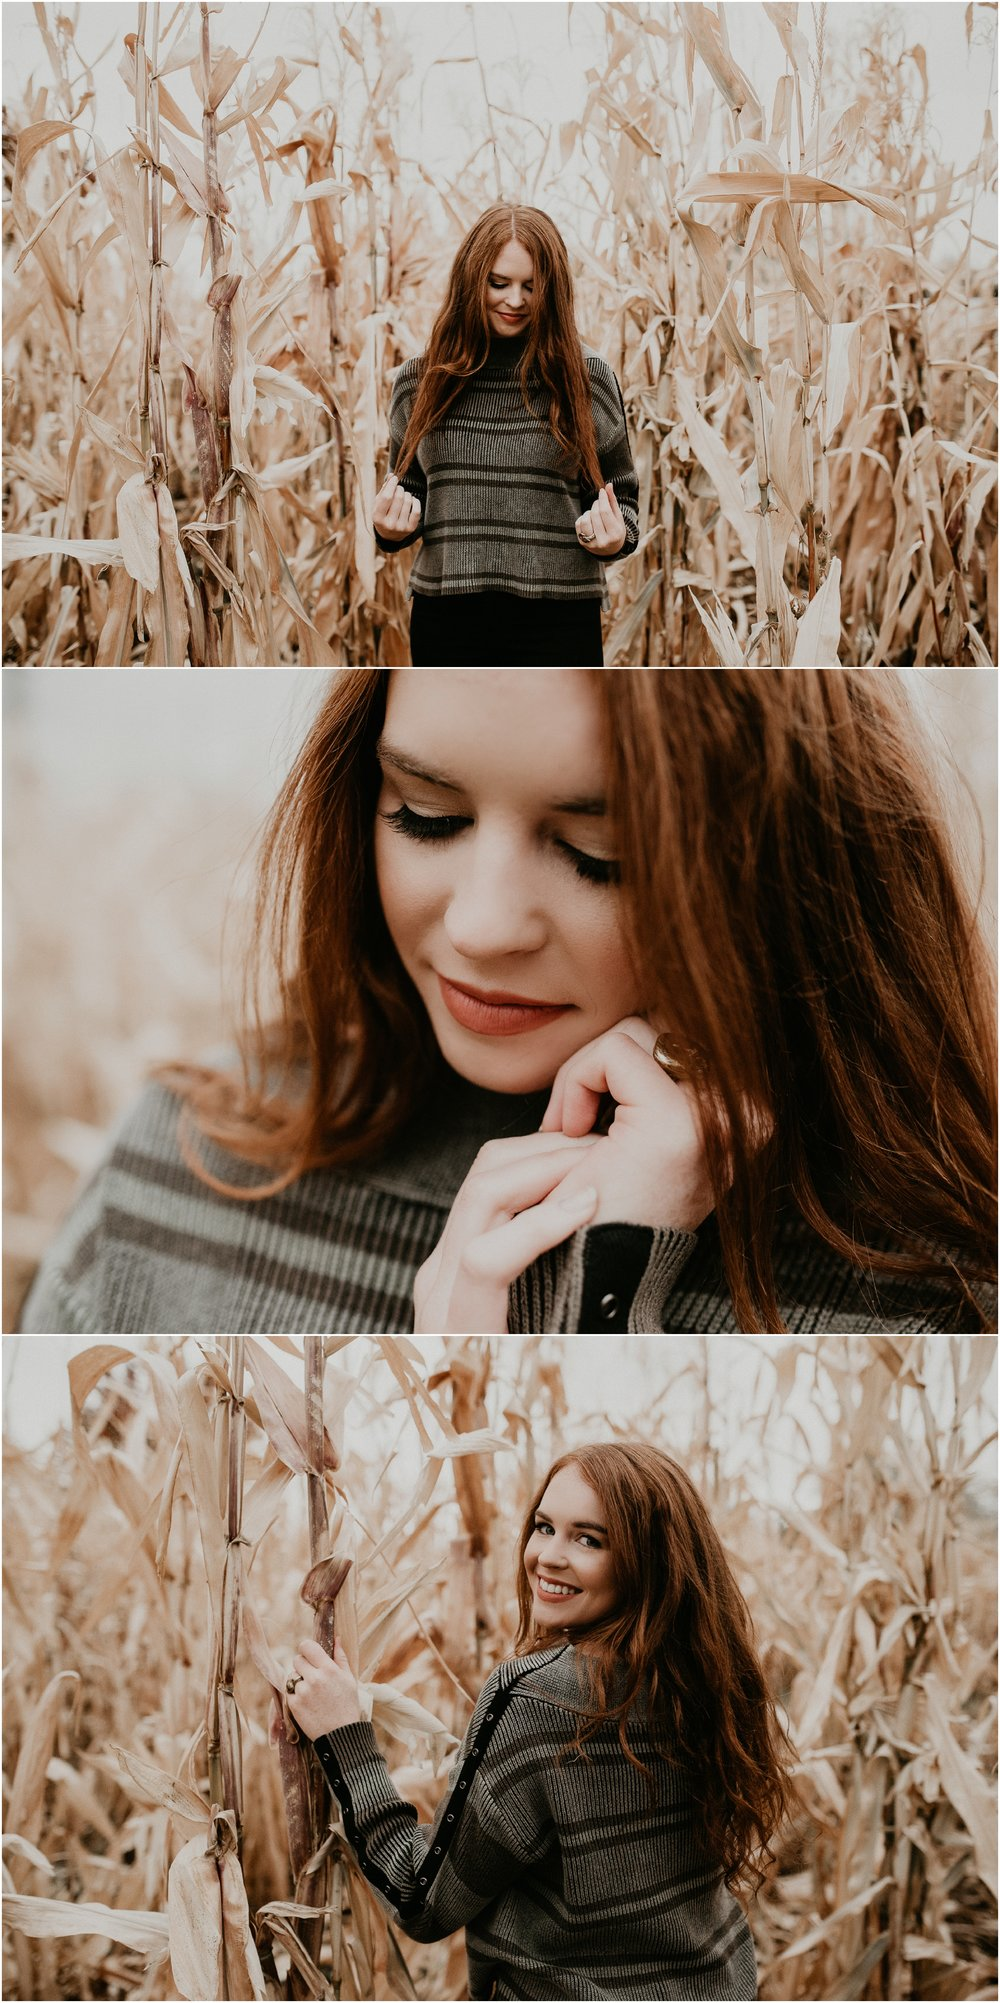 Boise Senior Photographer Makayla Madden Photography Eagle High Senior Harlee Edwards Red Head Fall Downtown Boise Senior Pics Corn Field Farmstead Meridian Senior Photographer